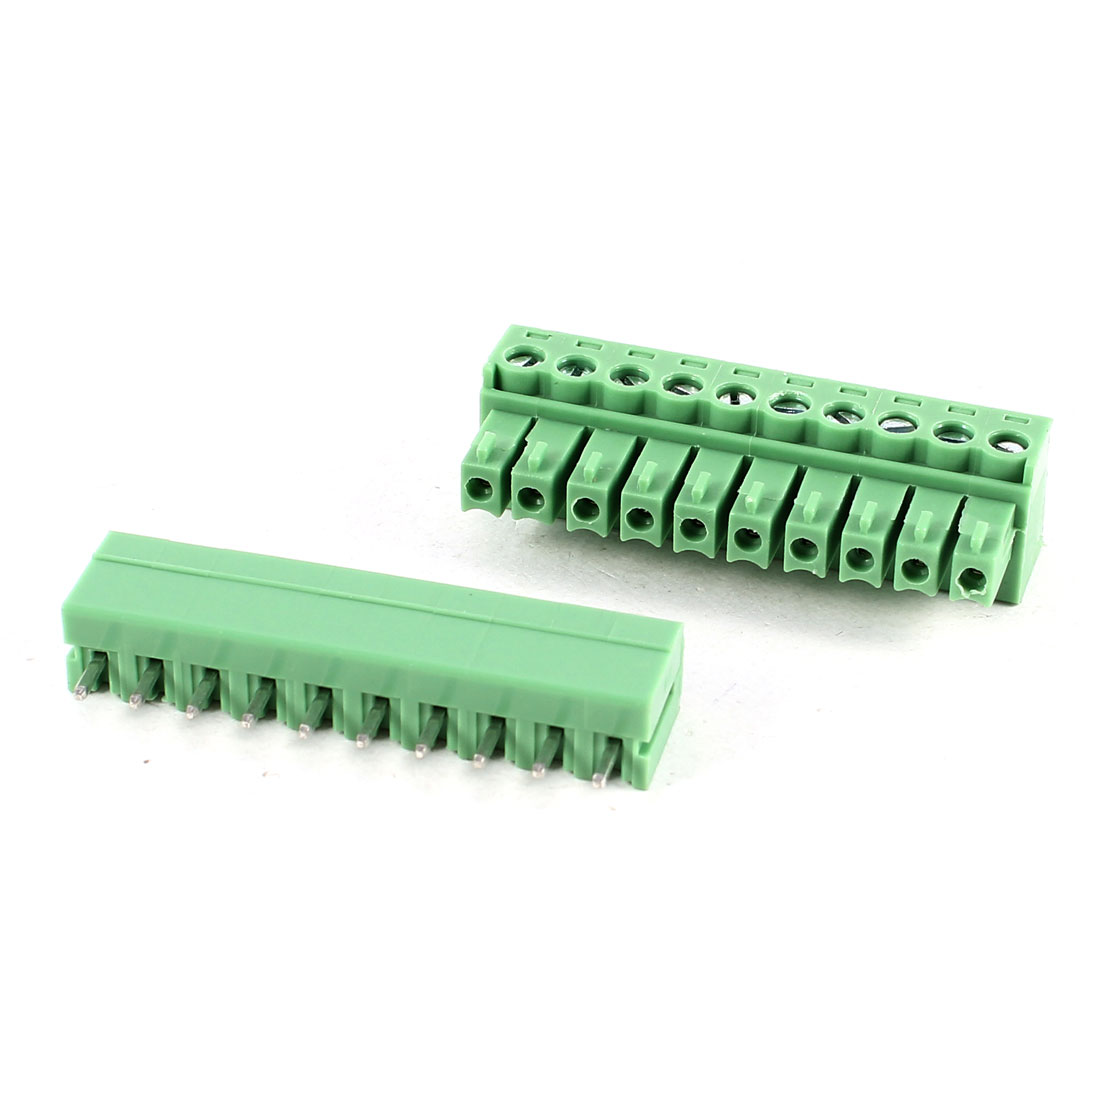 Green KF2EDG 3.81mm 10Position Screw Pluggable Terminal Block Connector 300V 8A